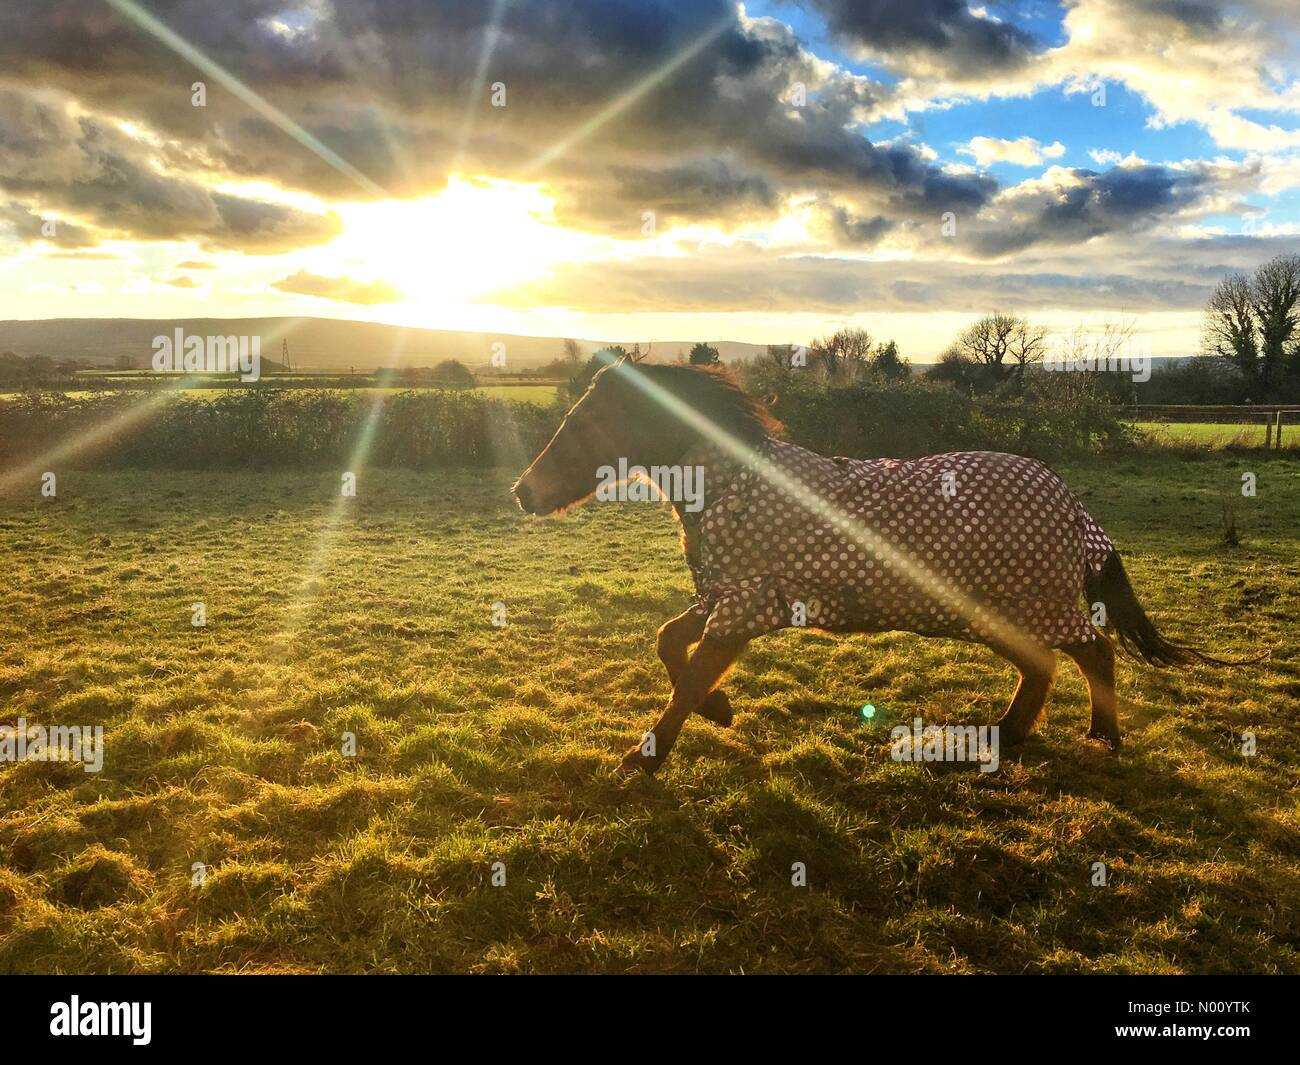 Ripe, East Sussex, UK. 9th December 2018. UK Weather. Pony enjoying the last of the sunshine near the South Downs National Park in East Sussex. © Peter Cripps/Stockimo Live News Credit: Peter Cripps/StockimoNews/Alamy Live News - Stock Image